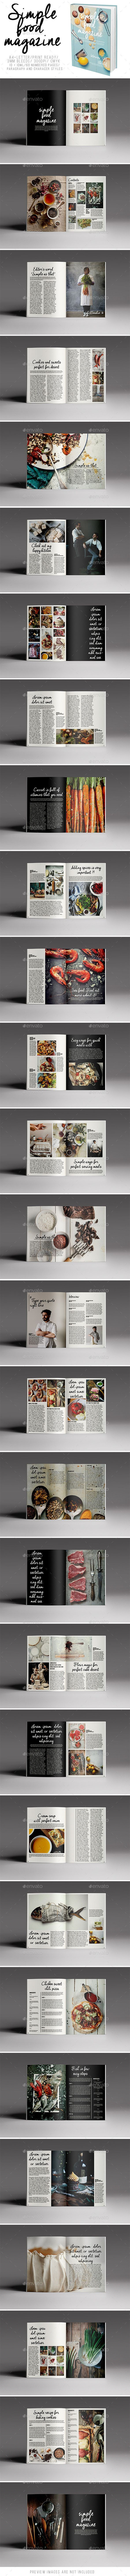 Simple Food Magazine Template | #magazinetemplate #magazinedesign | Download: